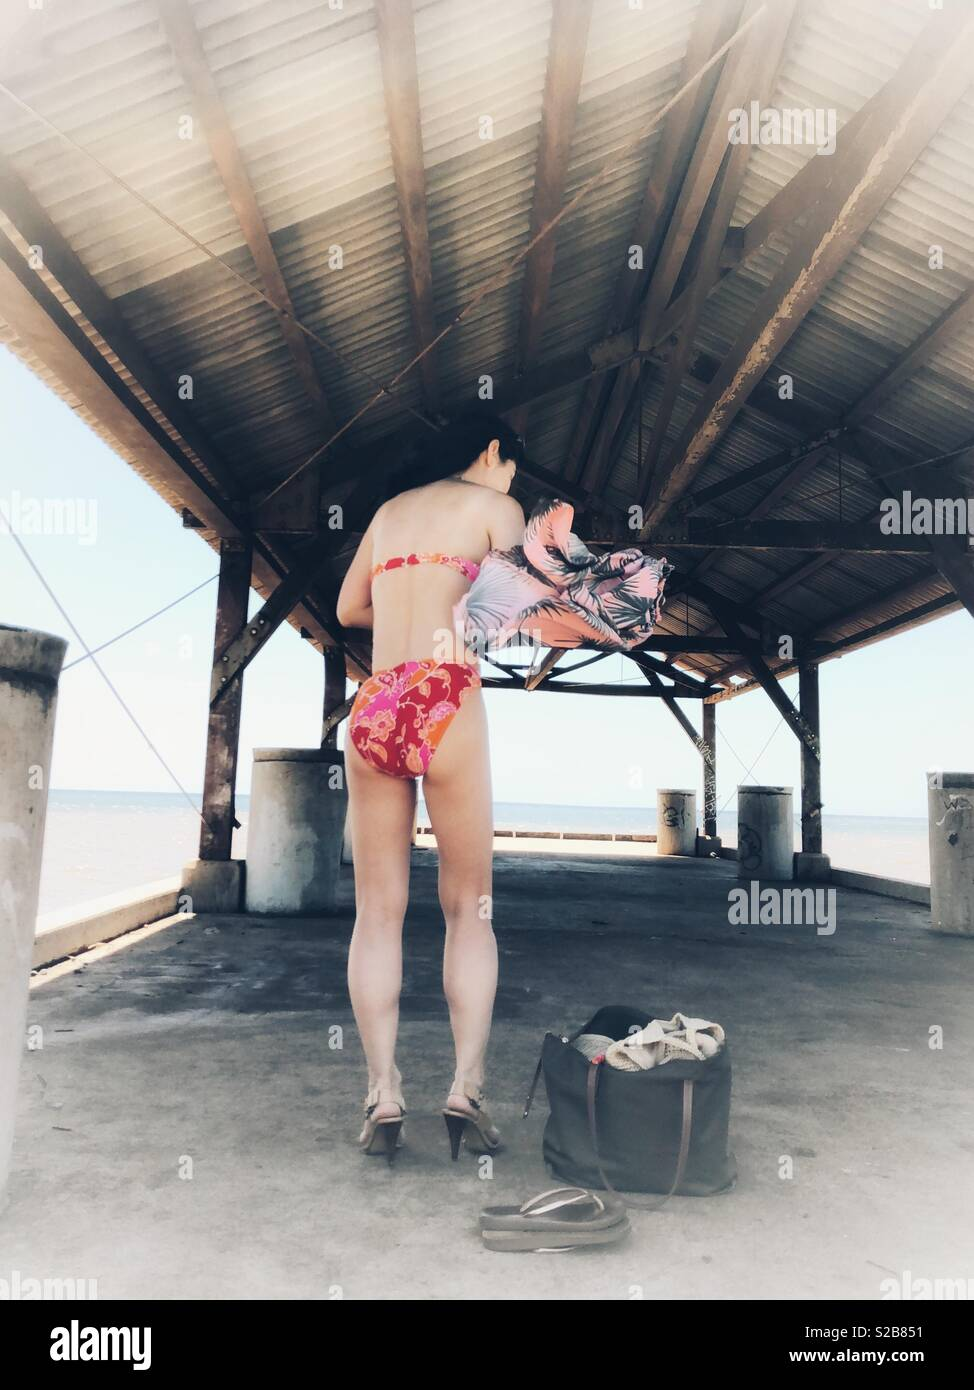 Brunette girl, young woman, in high heels changing clothes from sundress to floral pink bikini on a covered fishing pier in Hawaii Stock Photo